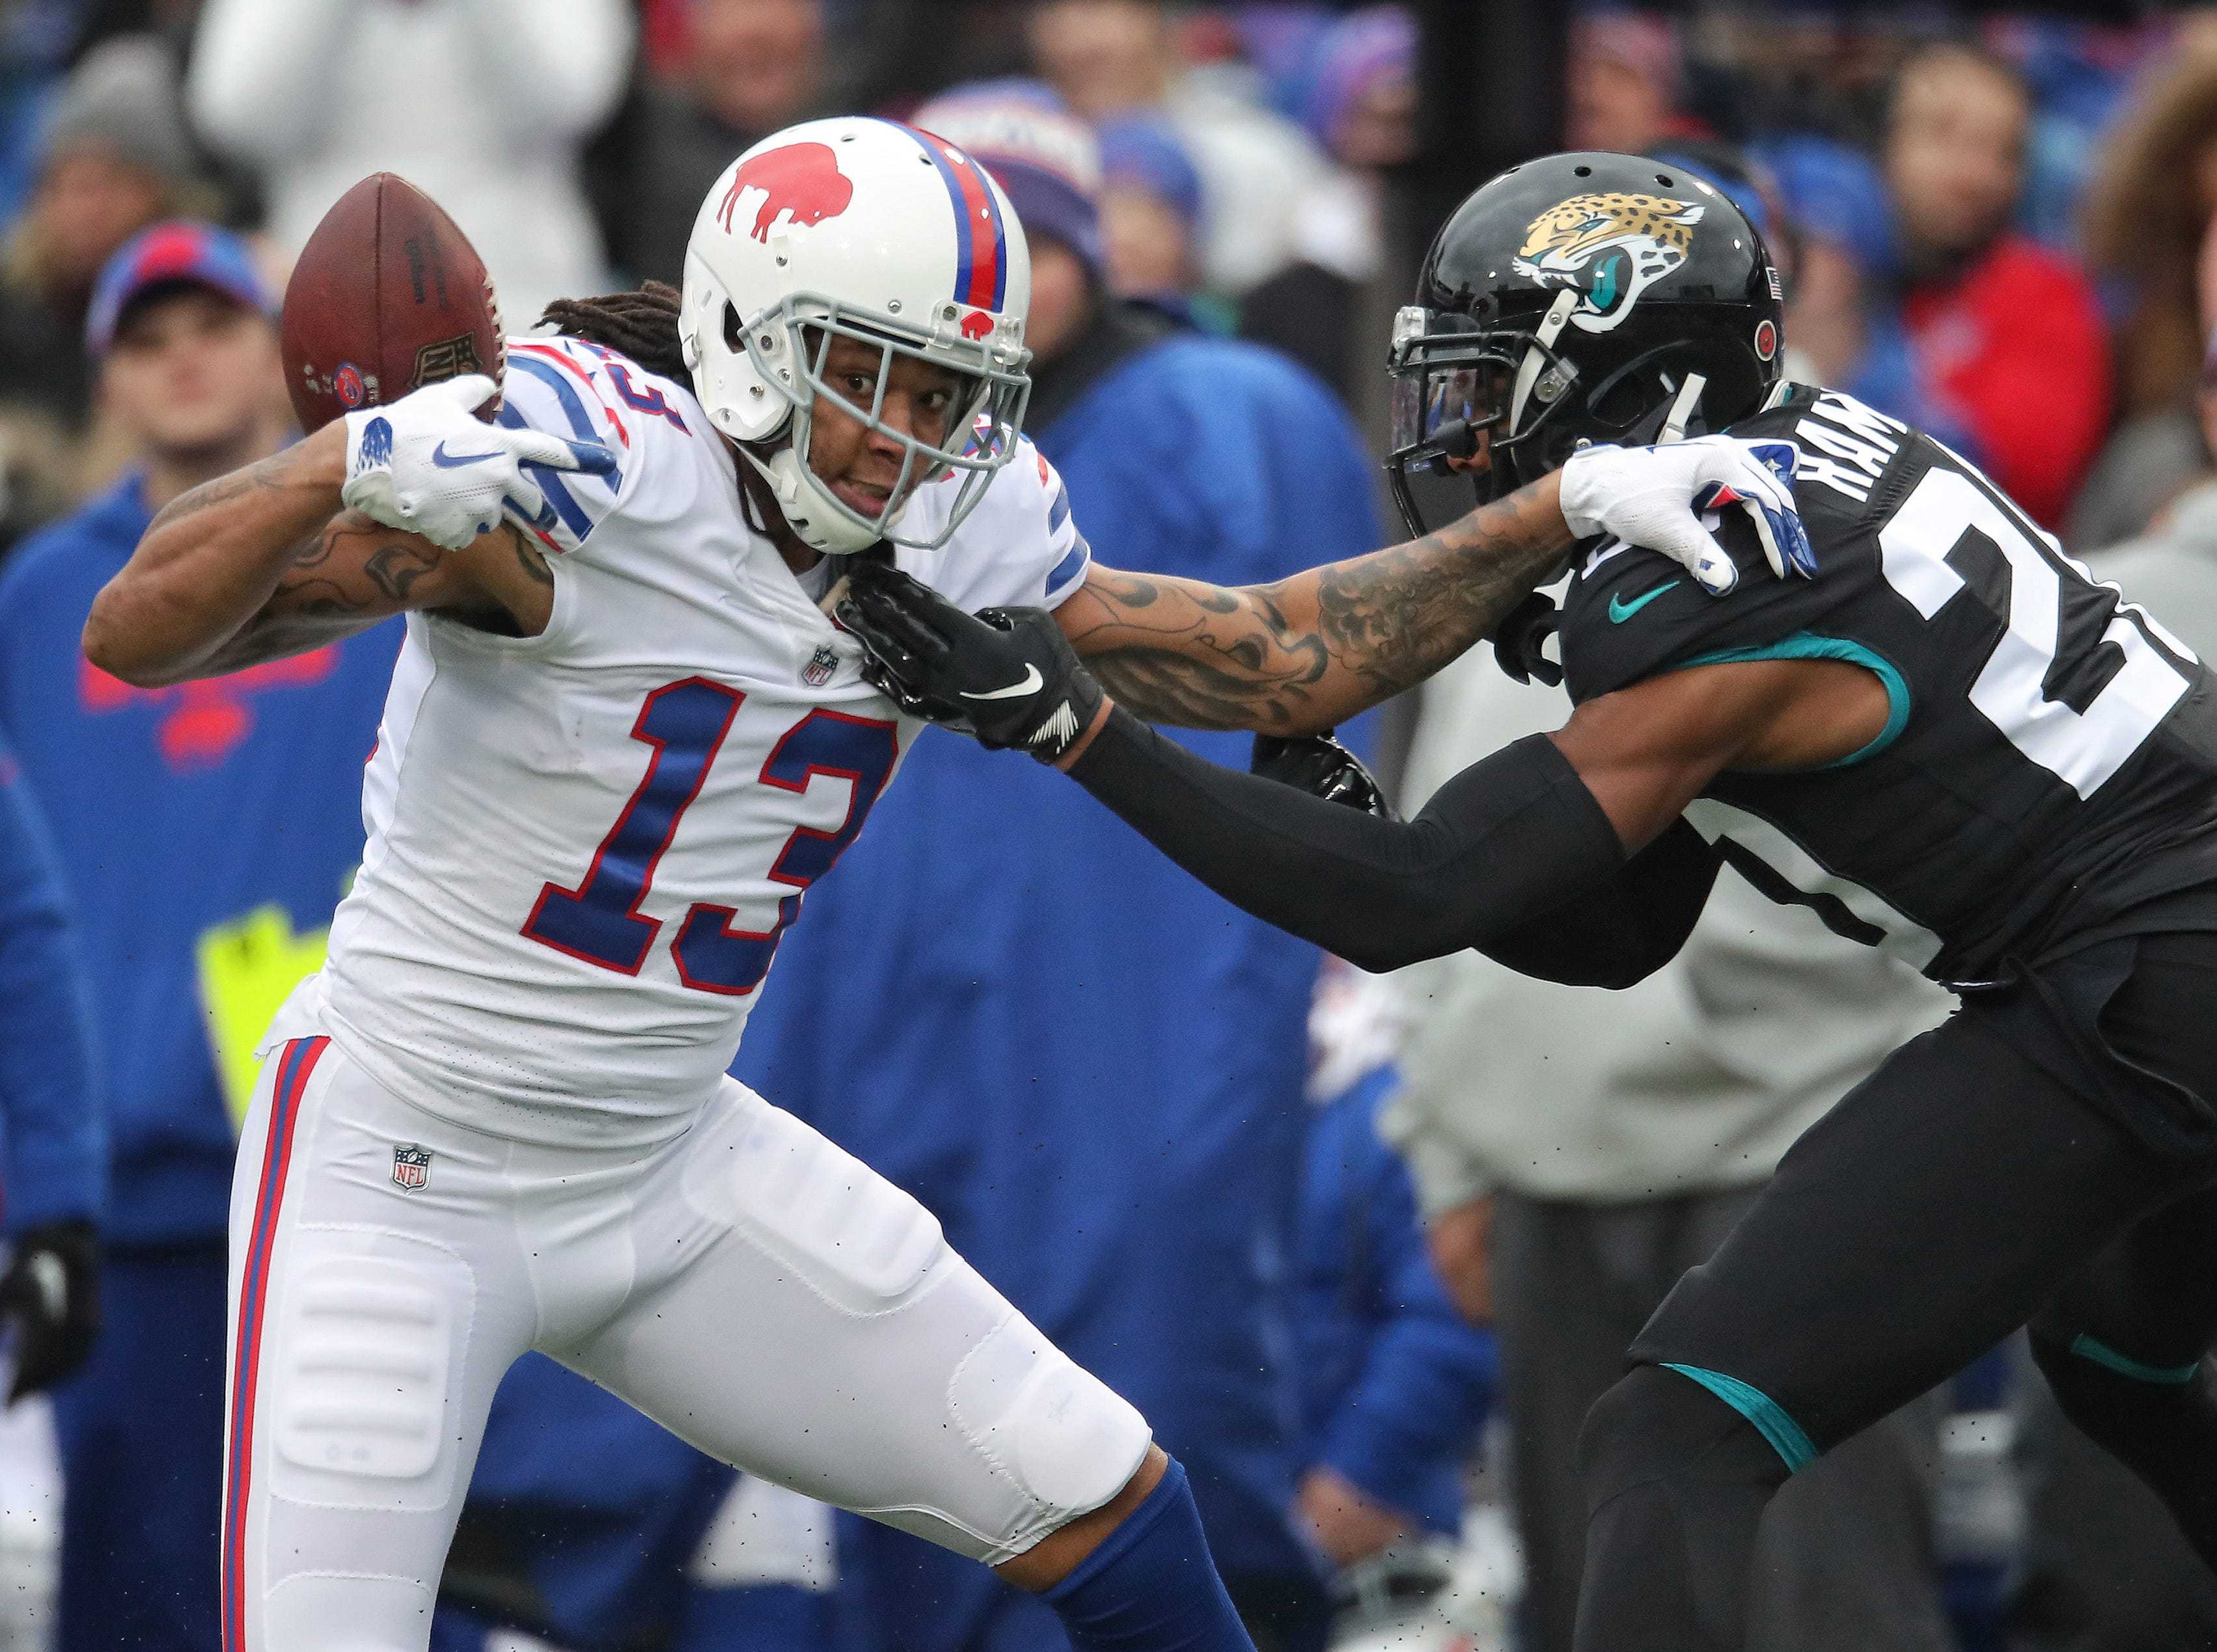 BUFFALO, NY - NOVEMBER 25: Kelvin Benjamin #13 of the Buffalo Bills bobbles a pass but manages to recover and hold on to the ball for the reception in the first quarter during NFL game action against the Jacksonville Jaguars at New Era Field on November 25, 2018 in Buffalo, New York. (Photo by Tom Szczerbowski/Getty Images)